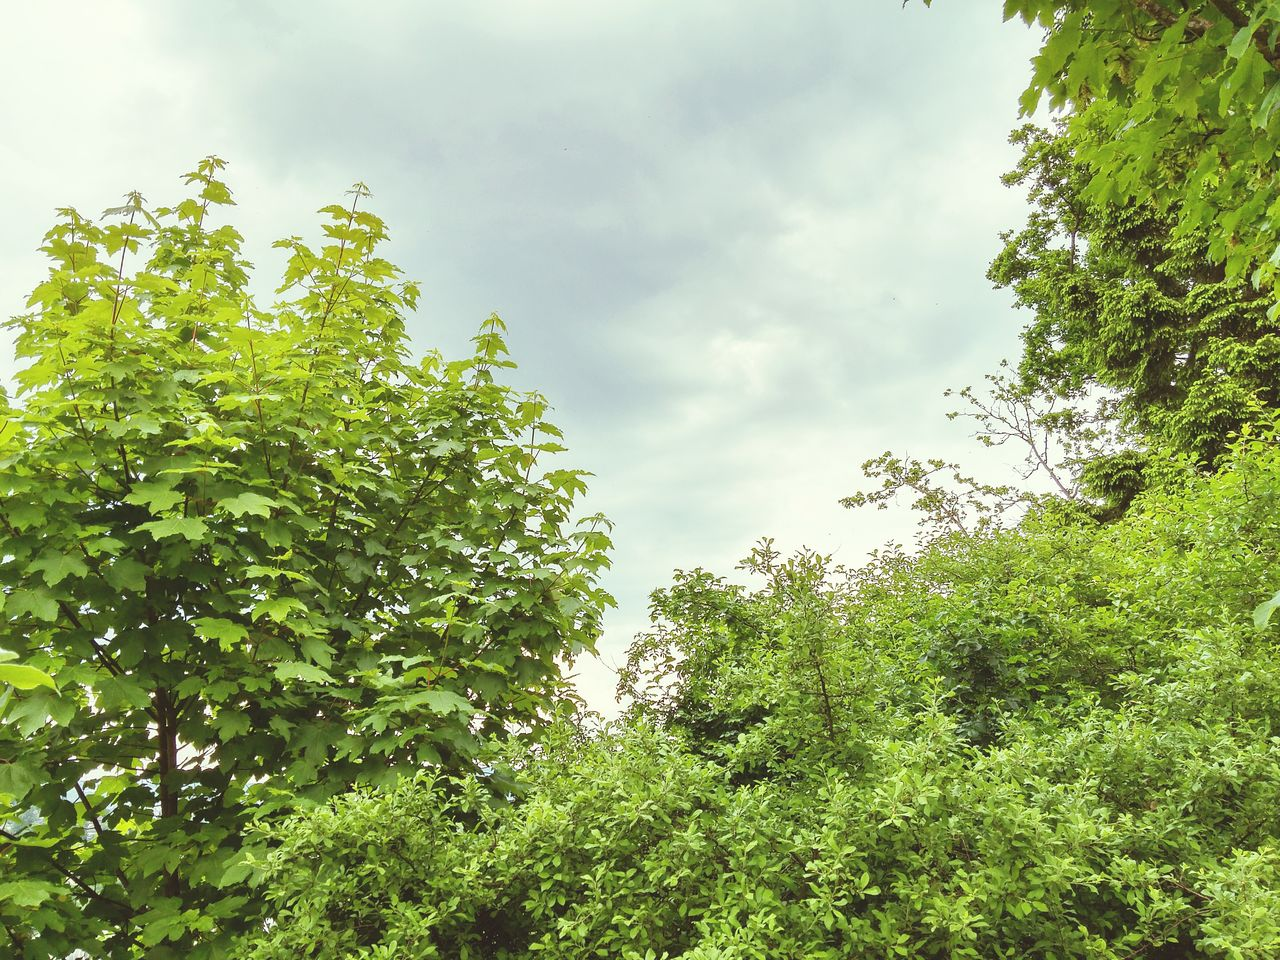 nature, tree, growth, green color, green, plant, day, no people, tranquility, outdoors, sky, beauty in nature, low angle view, forest